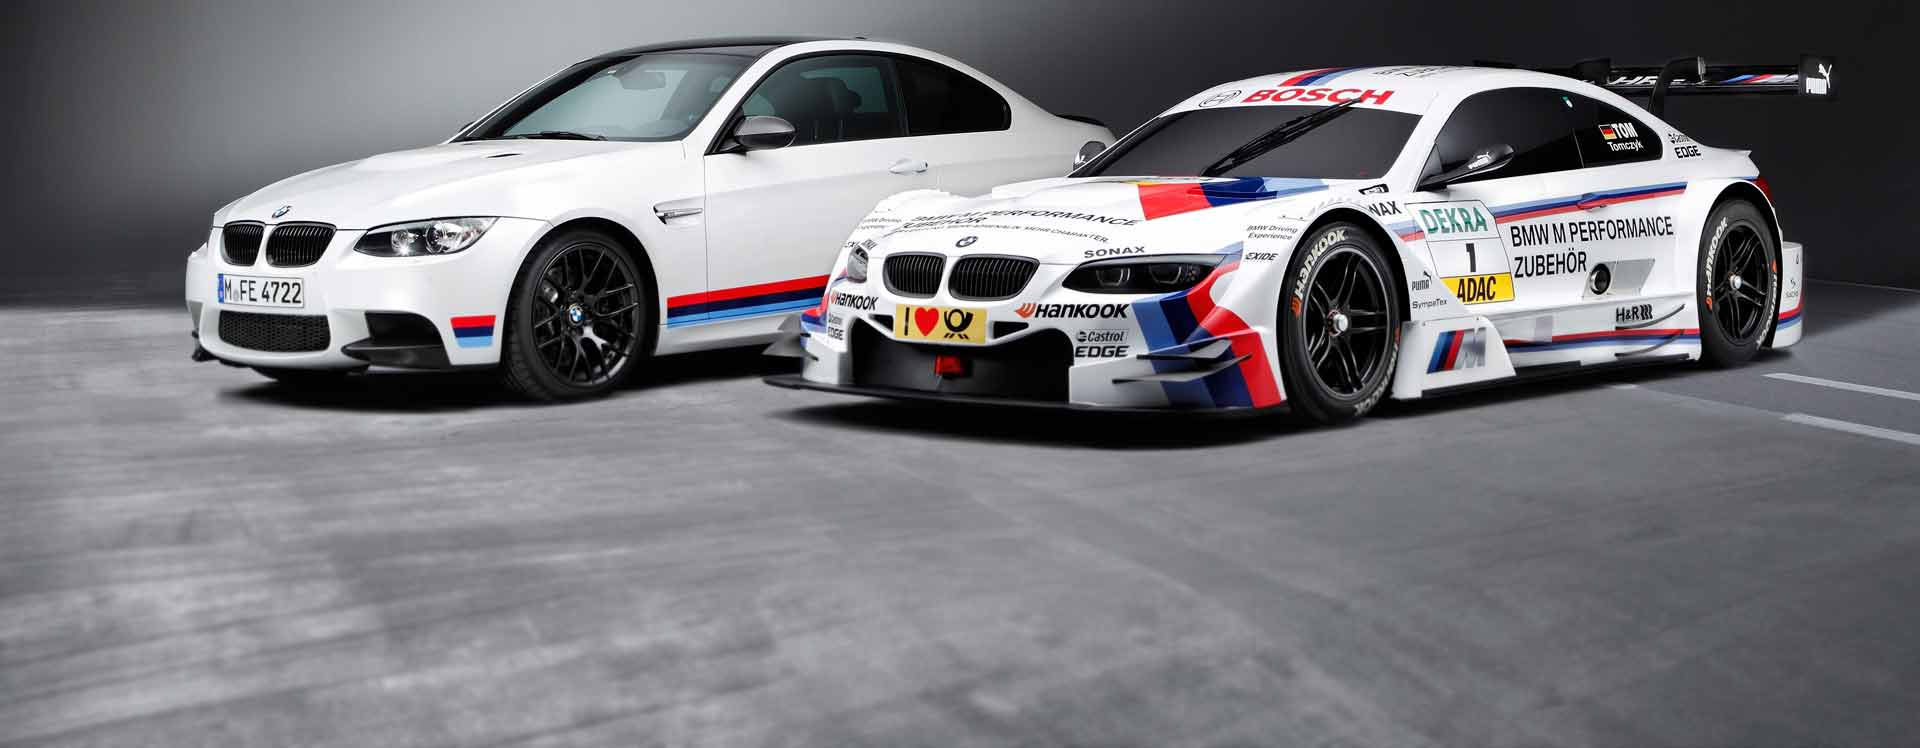 Second Generation Bmw M3 E36 3 0 And 3 2 History